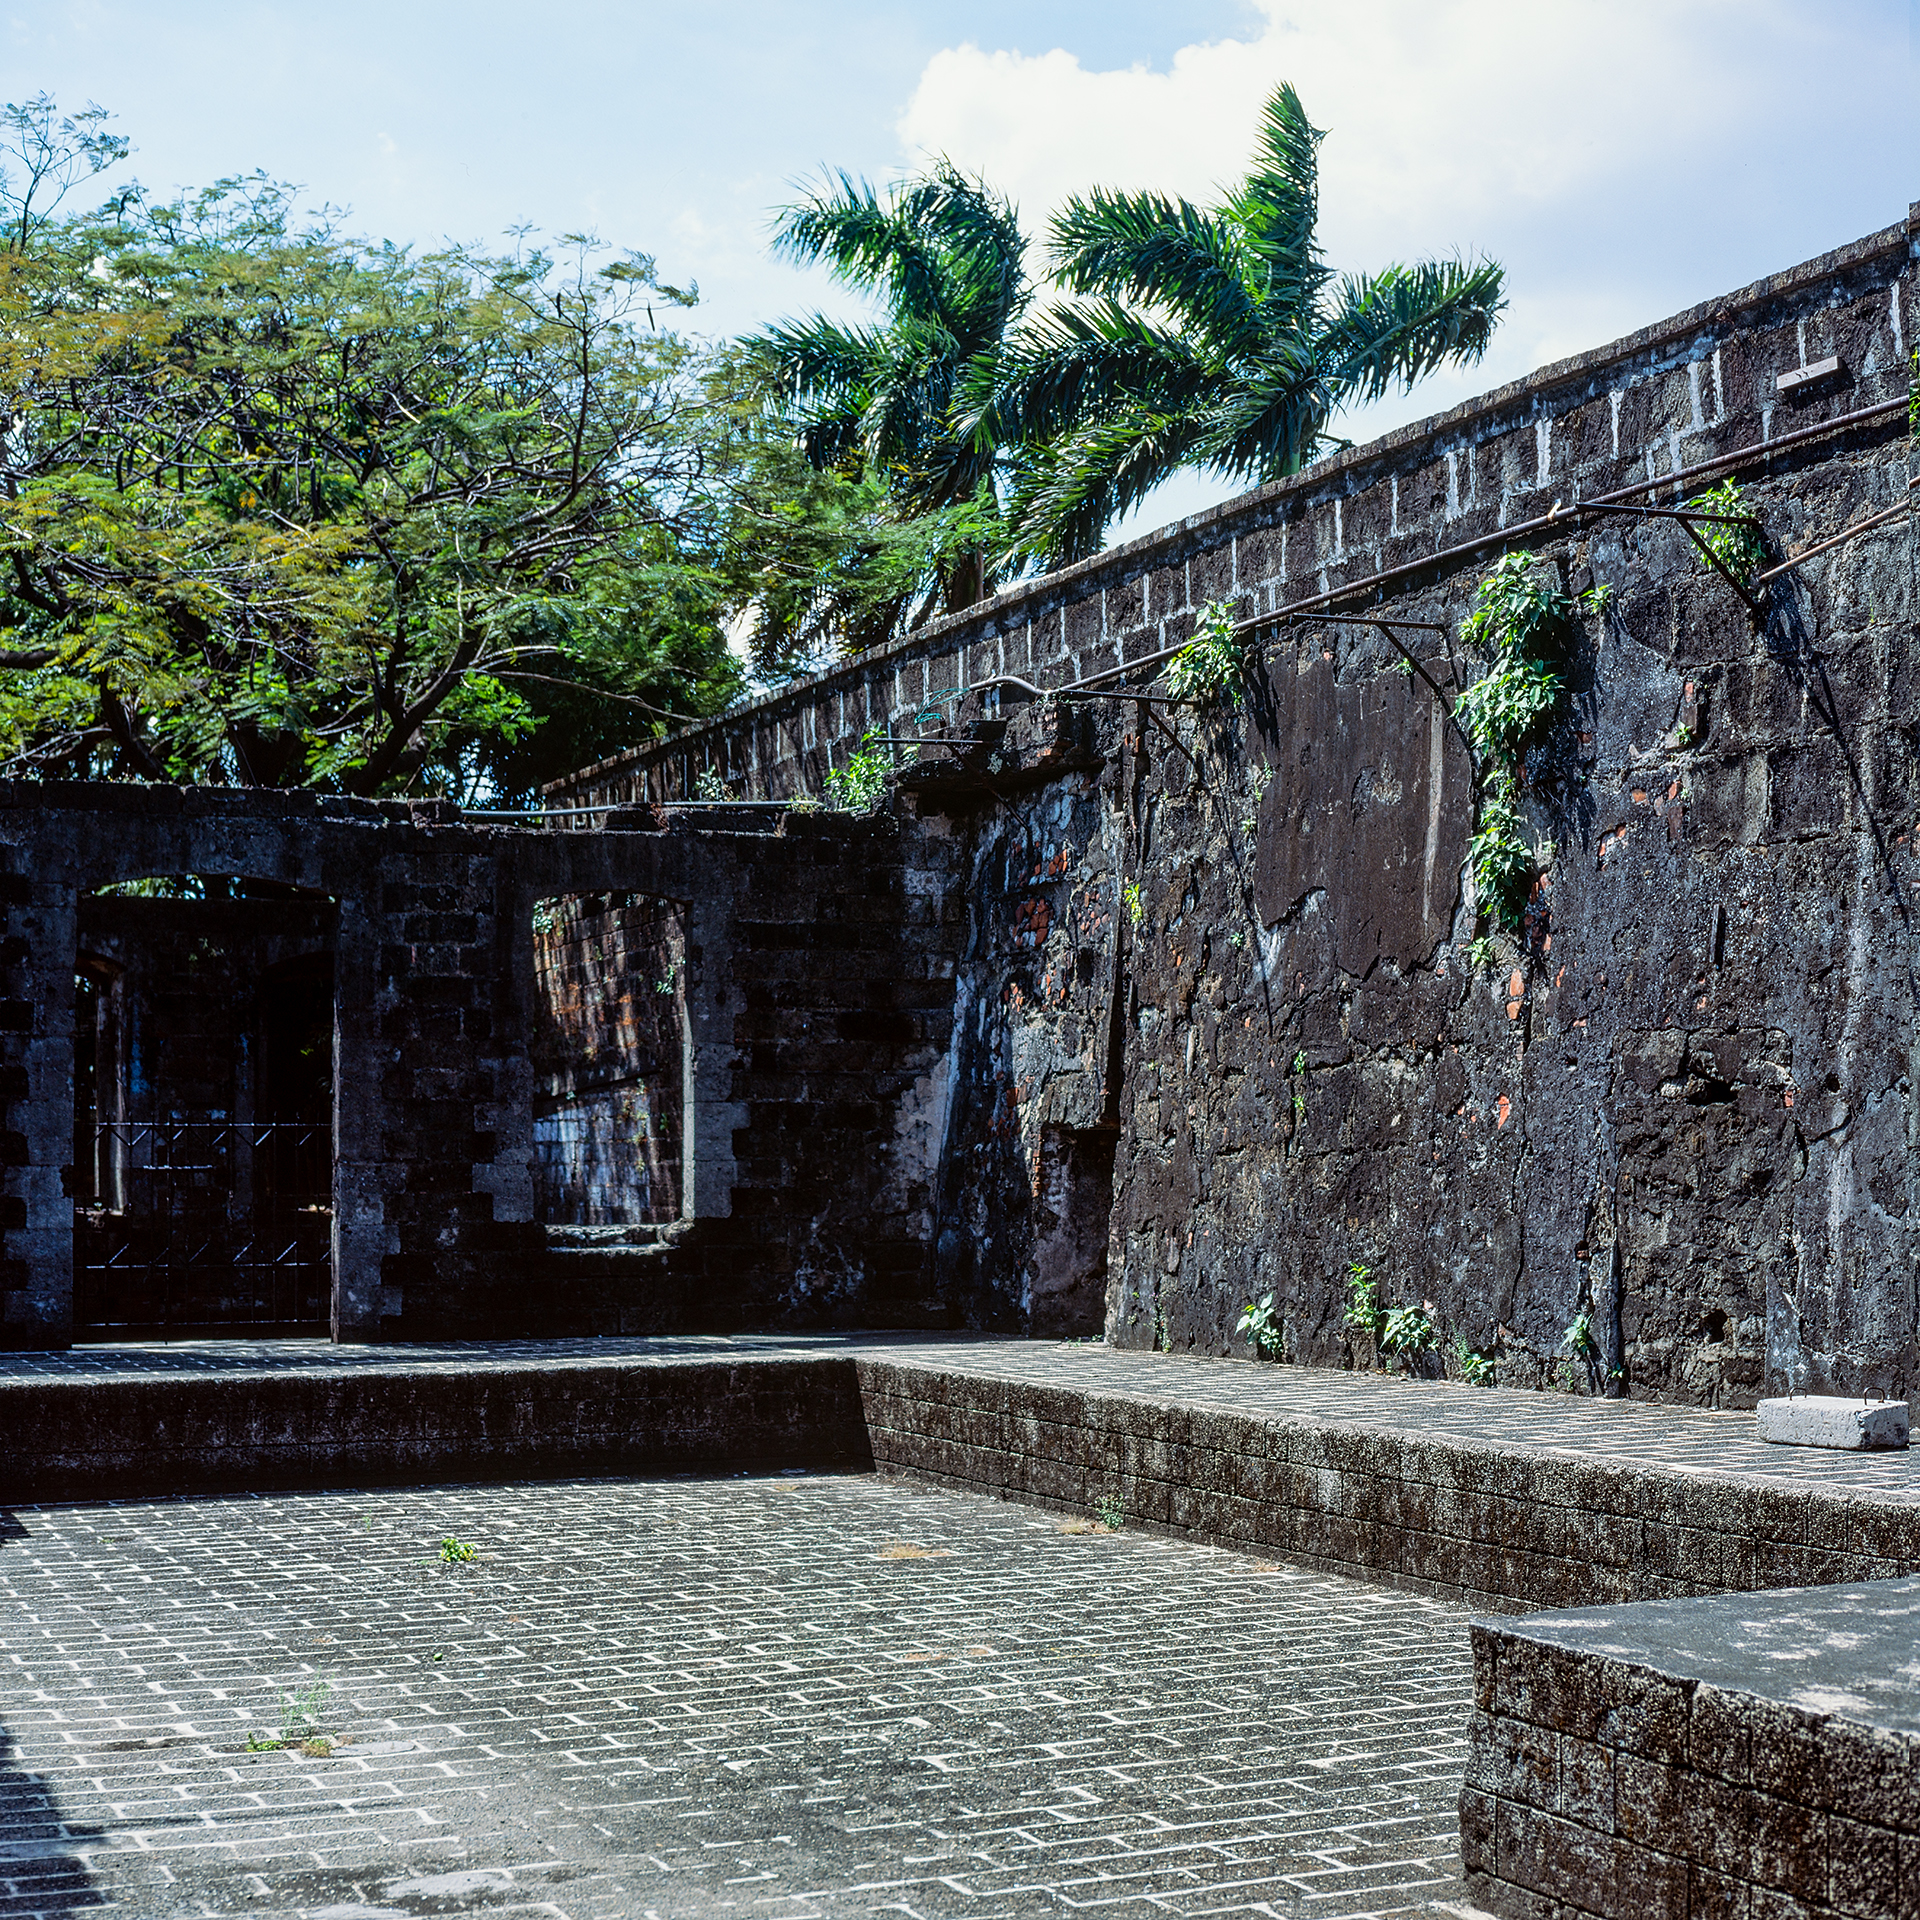 Near the cell of Jose Rizal at Fort Santiago